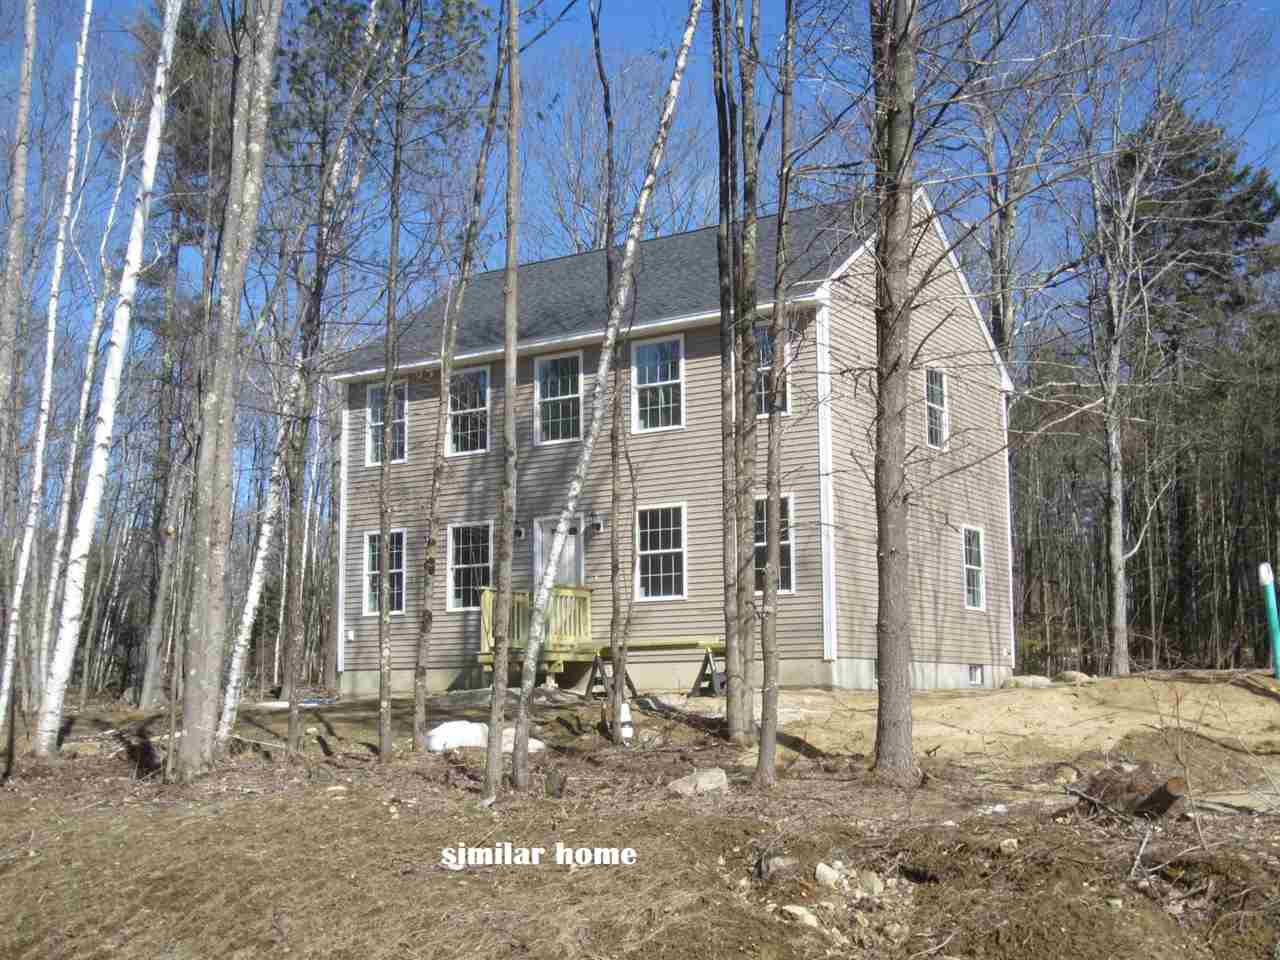 Photo of 17-3 Fieldstone Drive Deerfield NH 03037